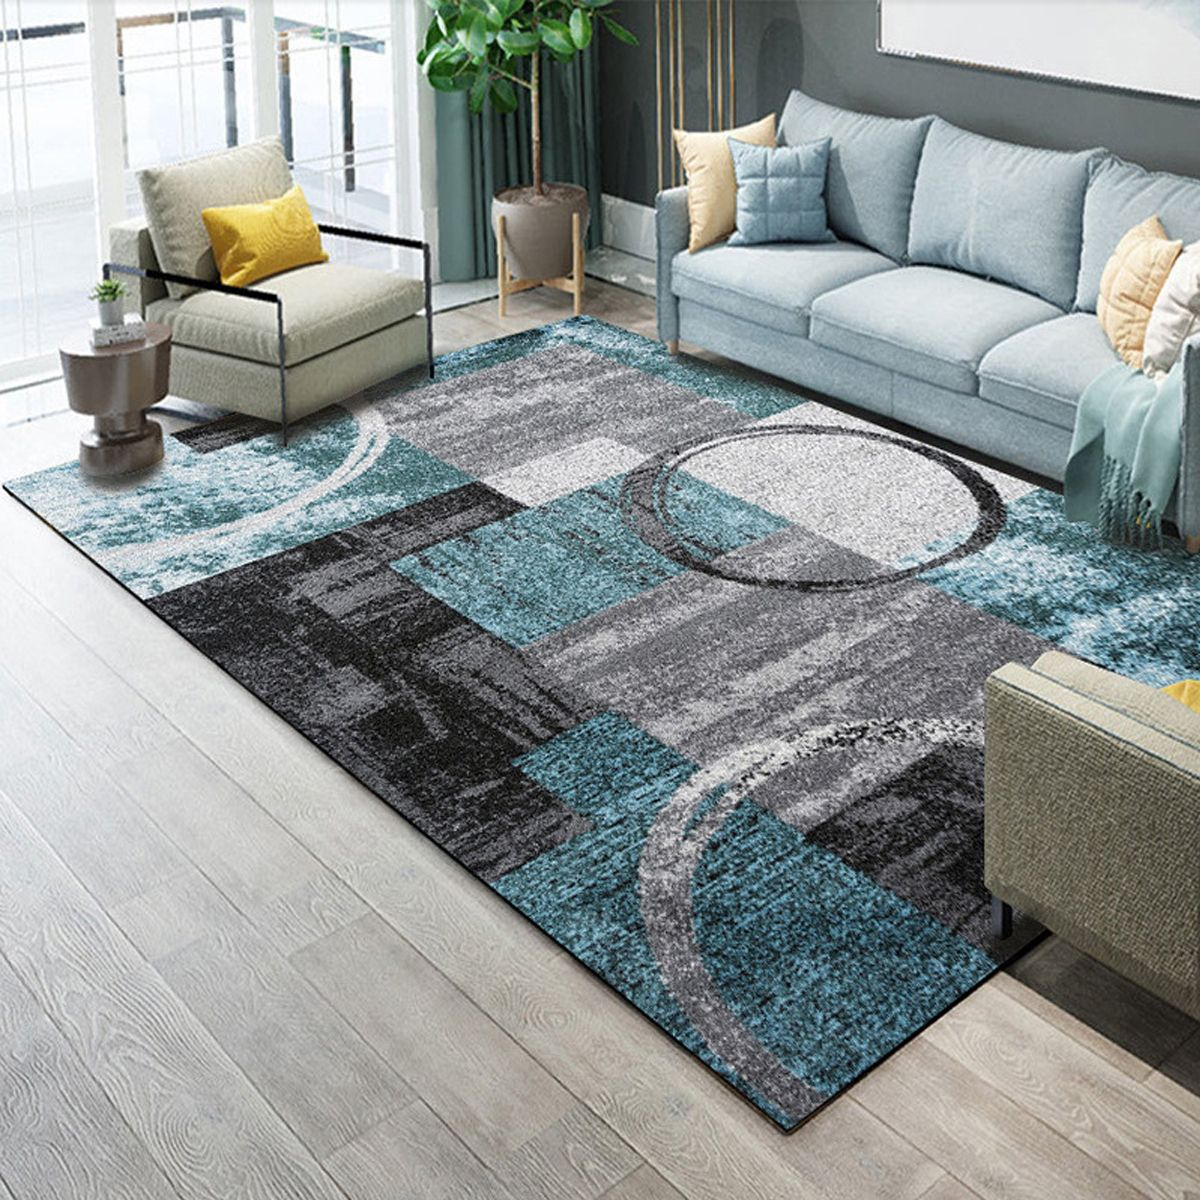 Large Modern Area Rugs For Living Room In Home Floor Carpet Mat Bedroom Dining Room Home Decor Rugs Walmart Com In 2021 Living Room Area Rugs Area Room Rugs Large Living Large area rugs for living room